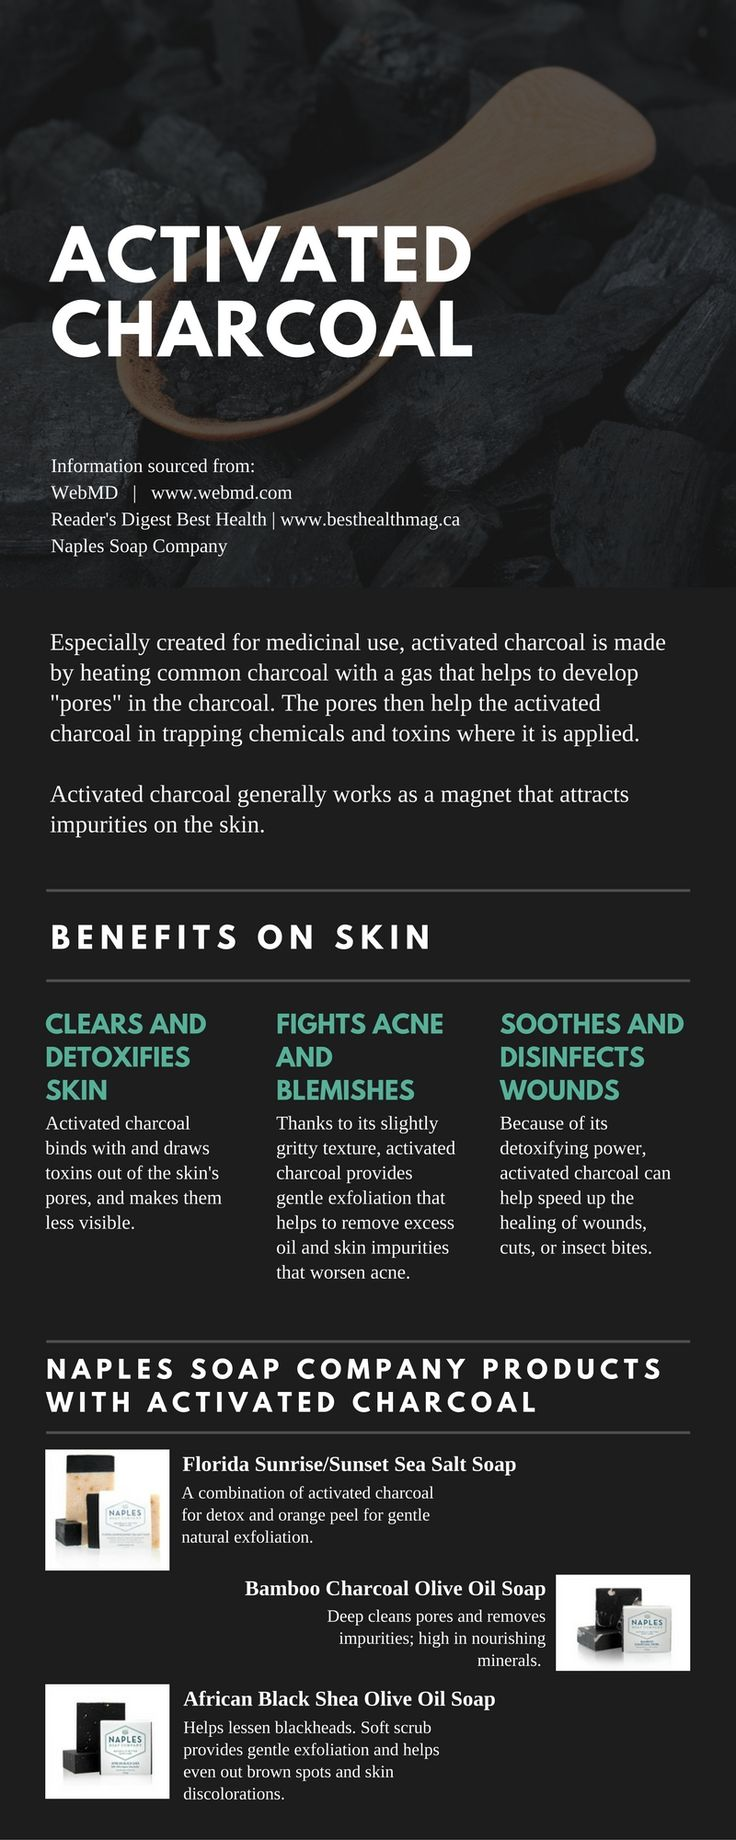 Benefits of Activated Charcoal on Skin | Naples Soap Company